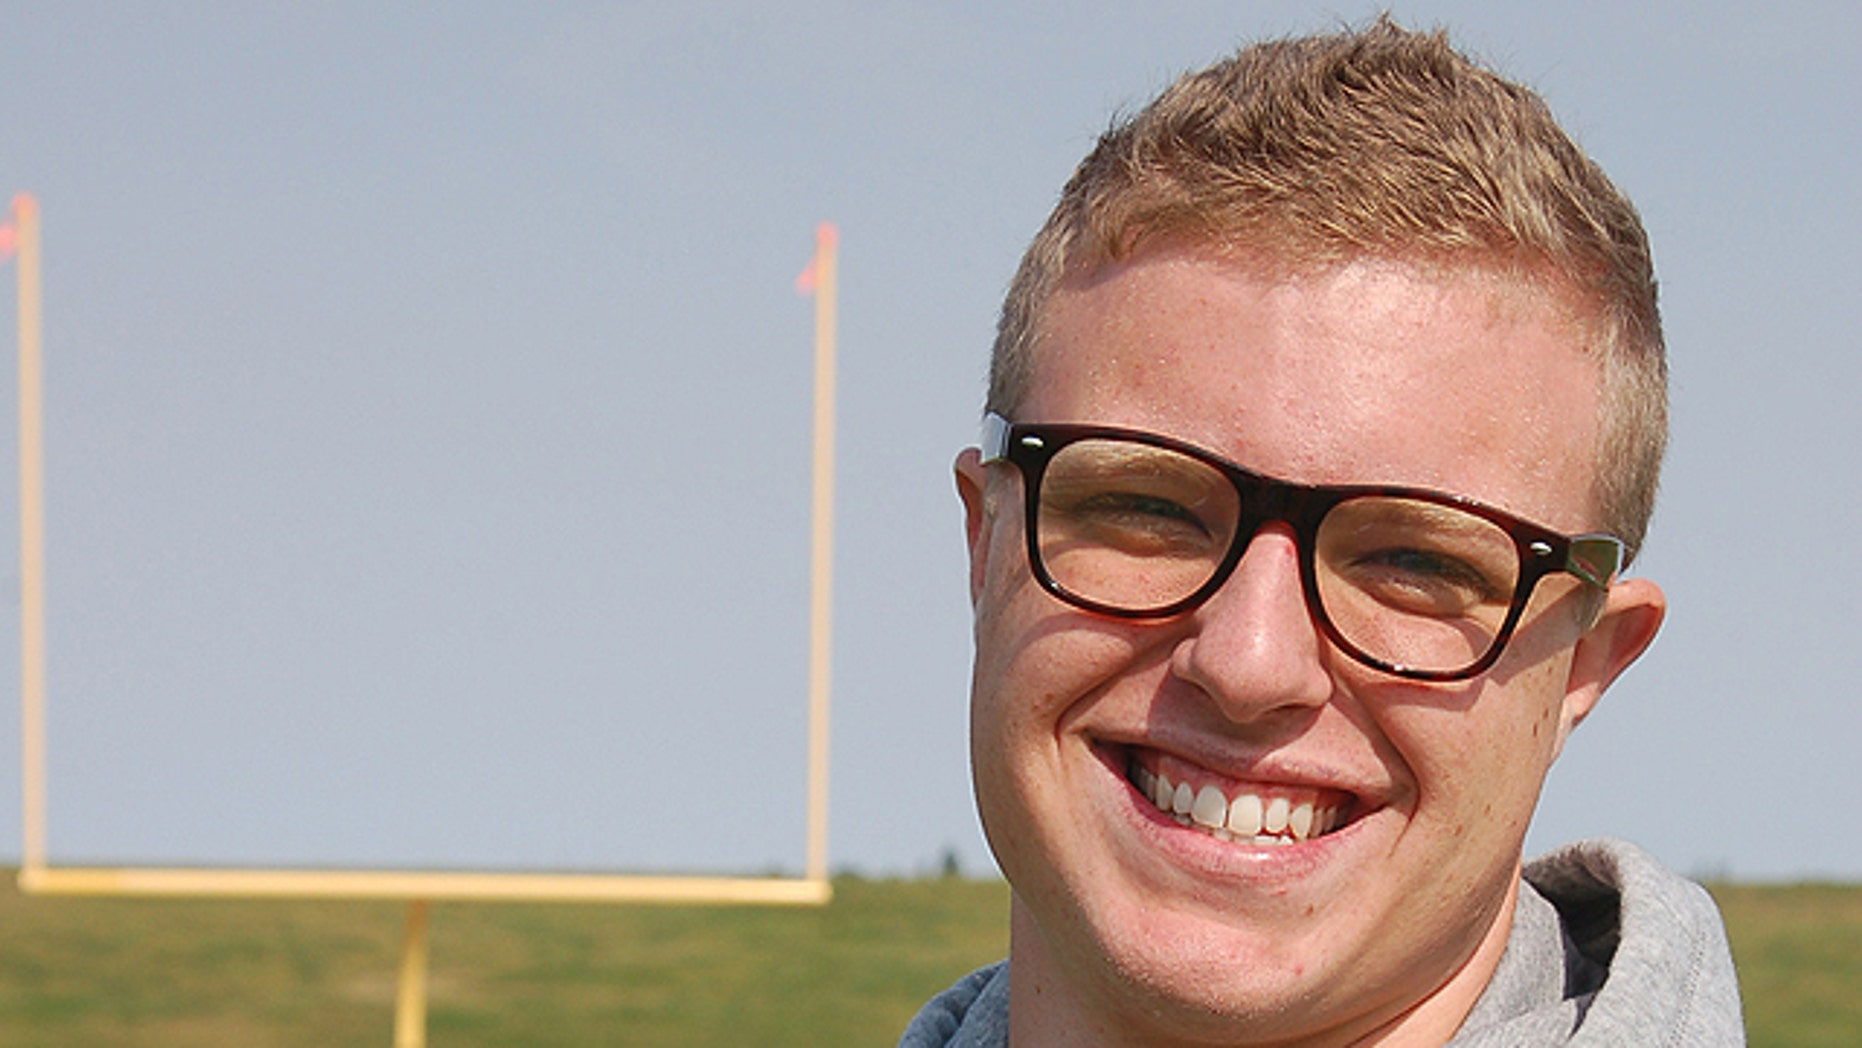 Sept. 11, 2012: Jamie Kuntz says he was kicked of the North Dakota State College of Science football team for being gay. School officials say he was dismissed from the team for lying to a coach. (AP)